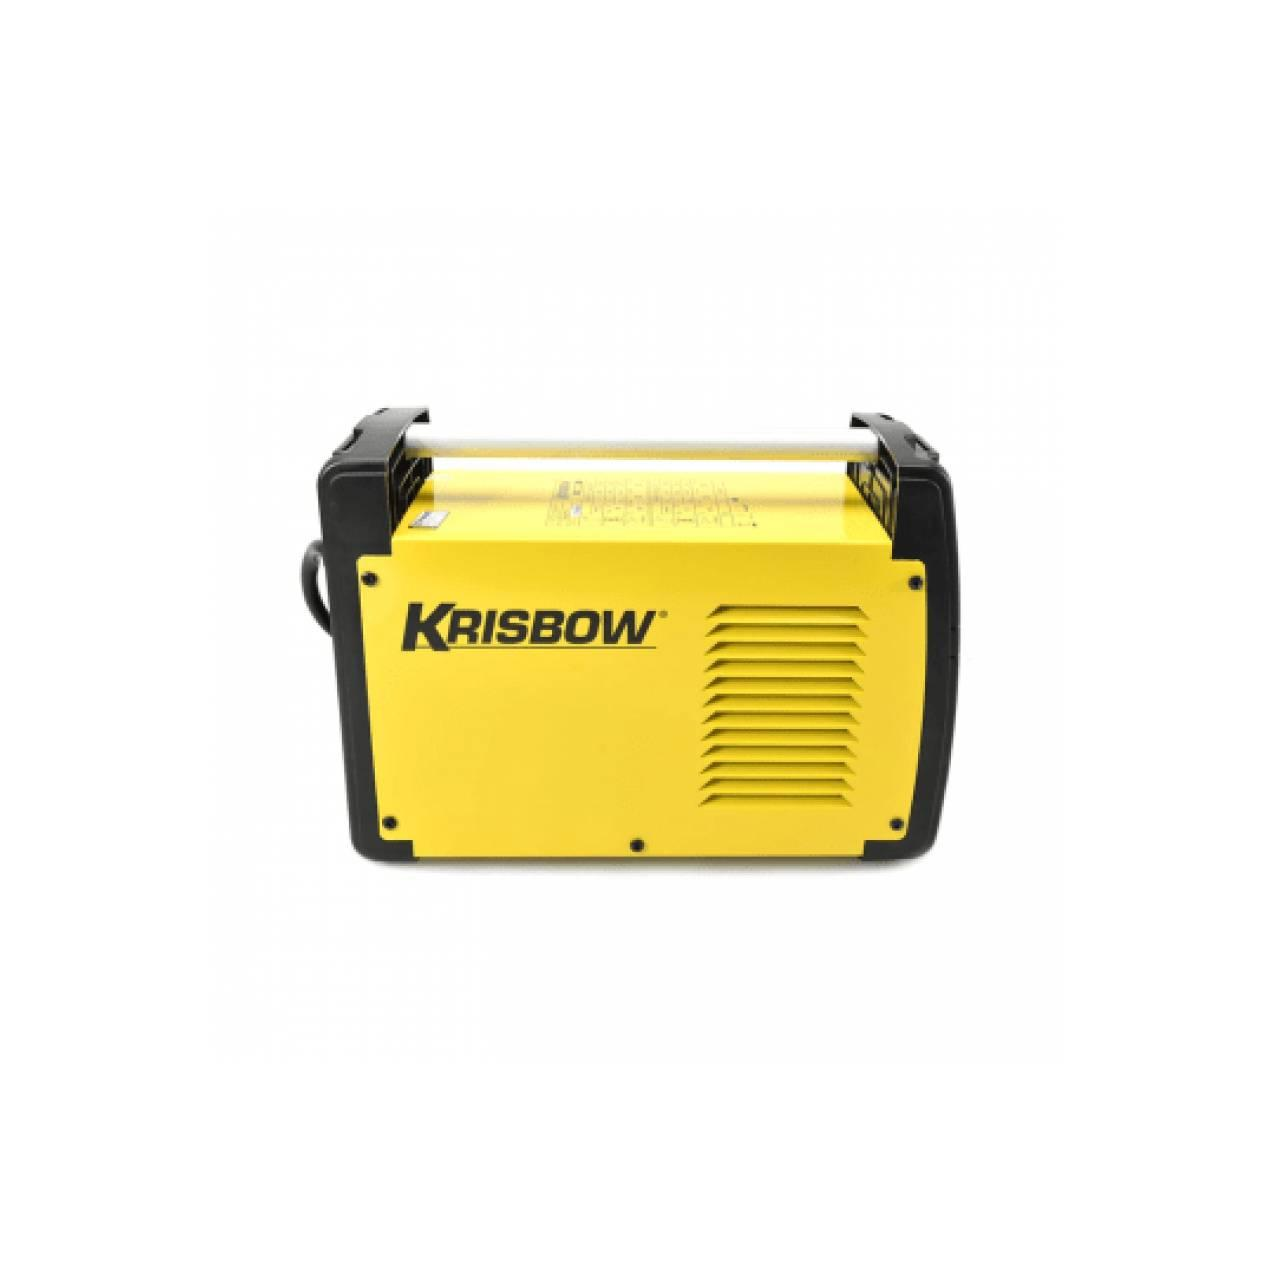 Krisbow Mesin Las Inverter 200A 1phase